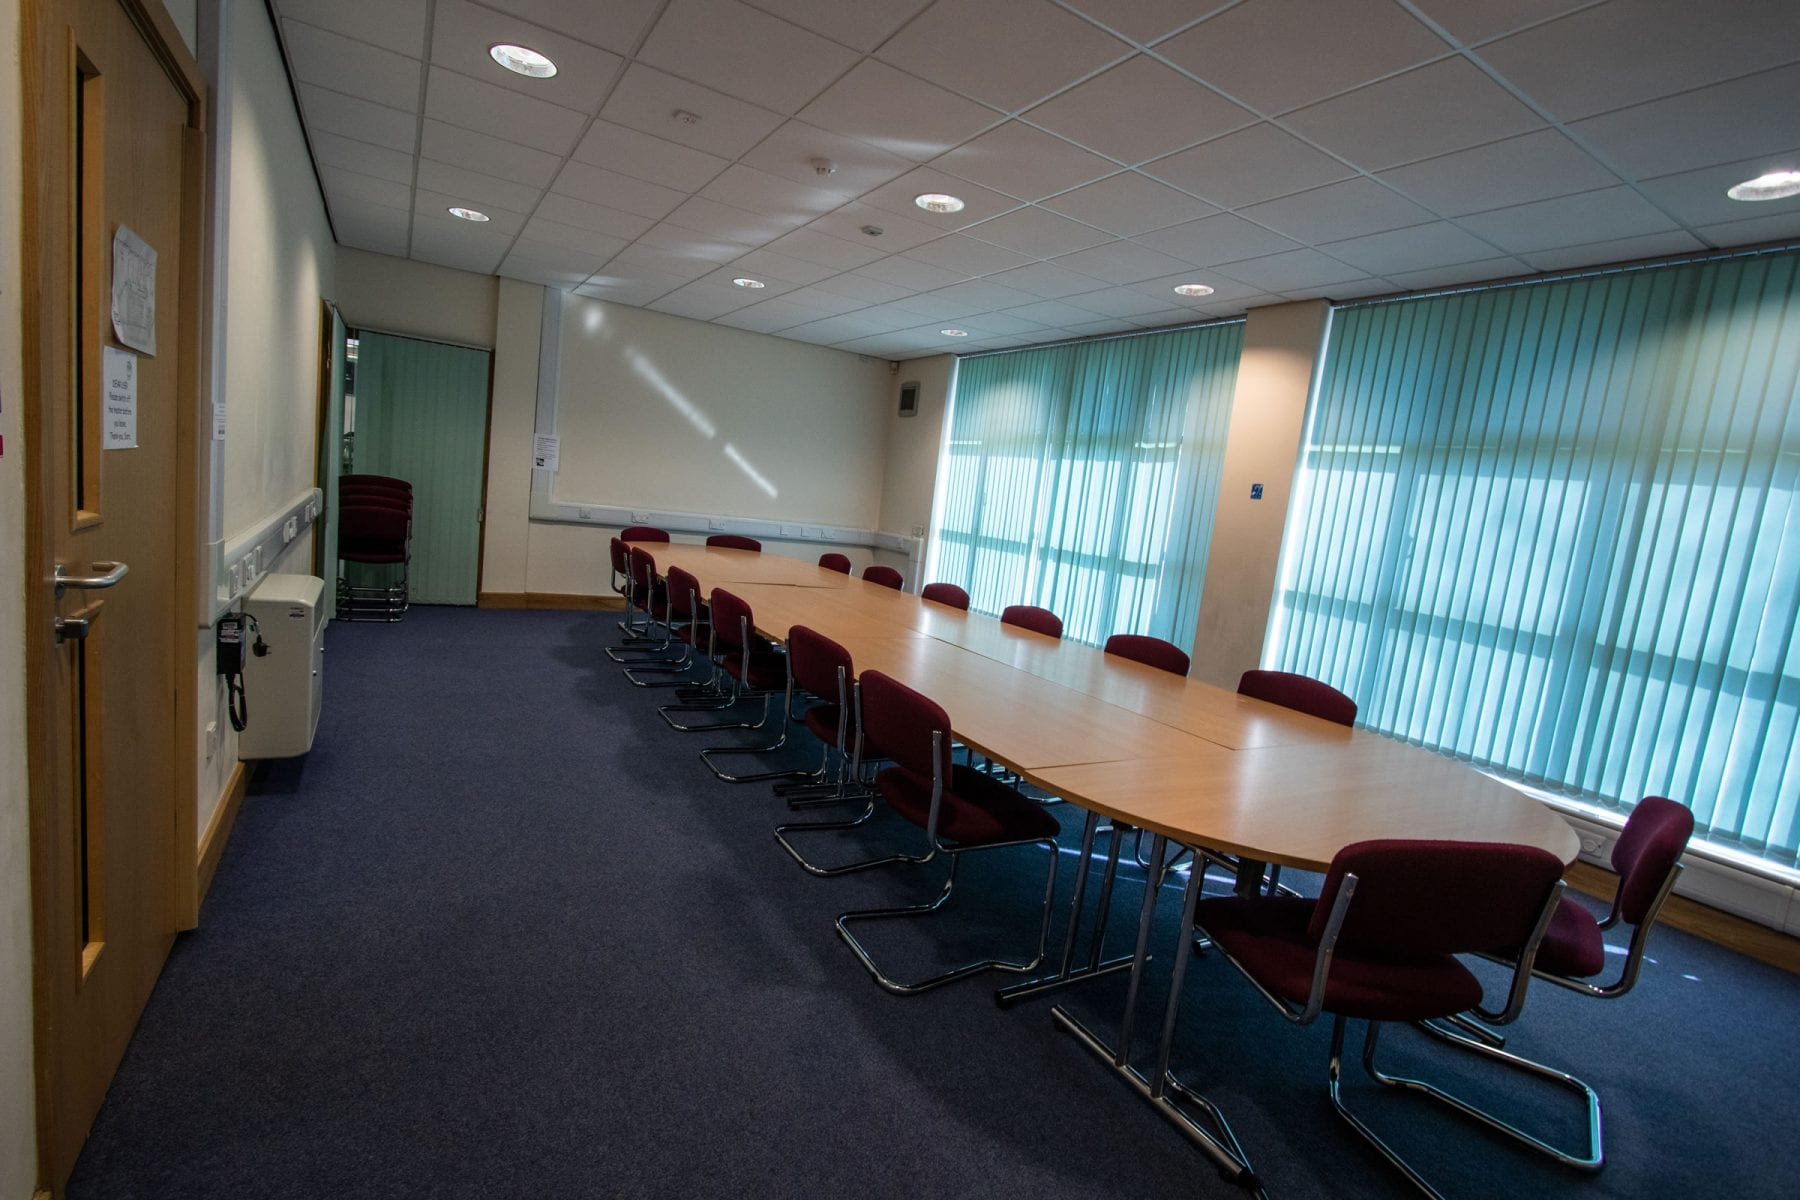 Room available for meetings and all groups